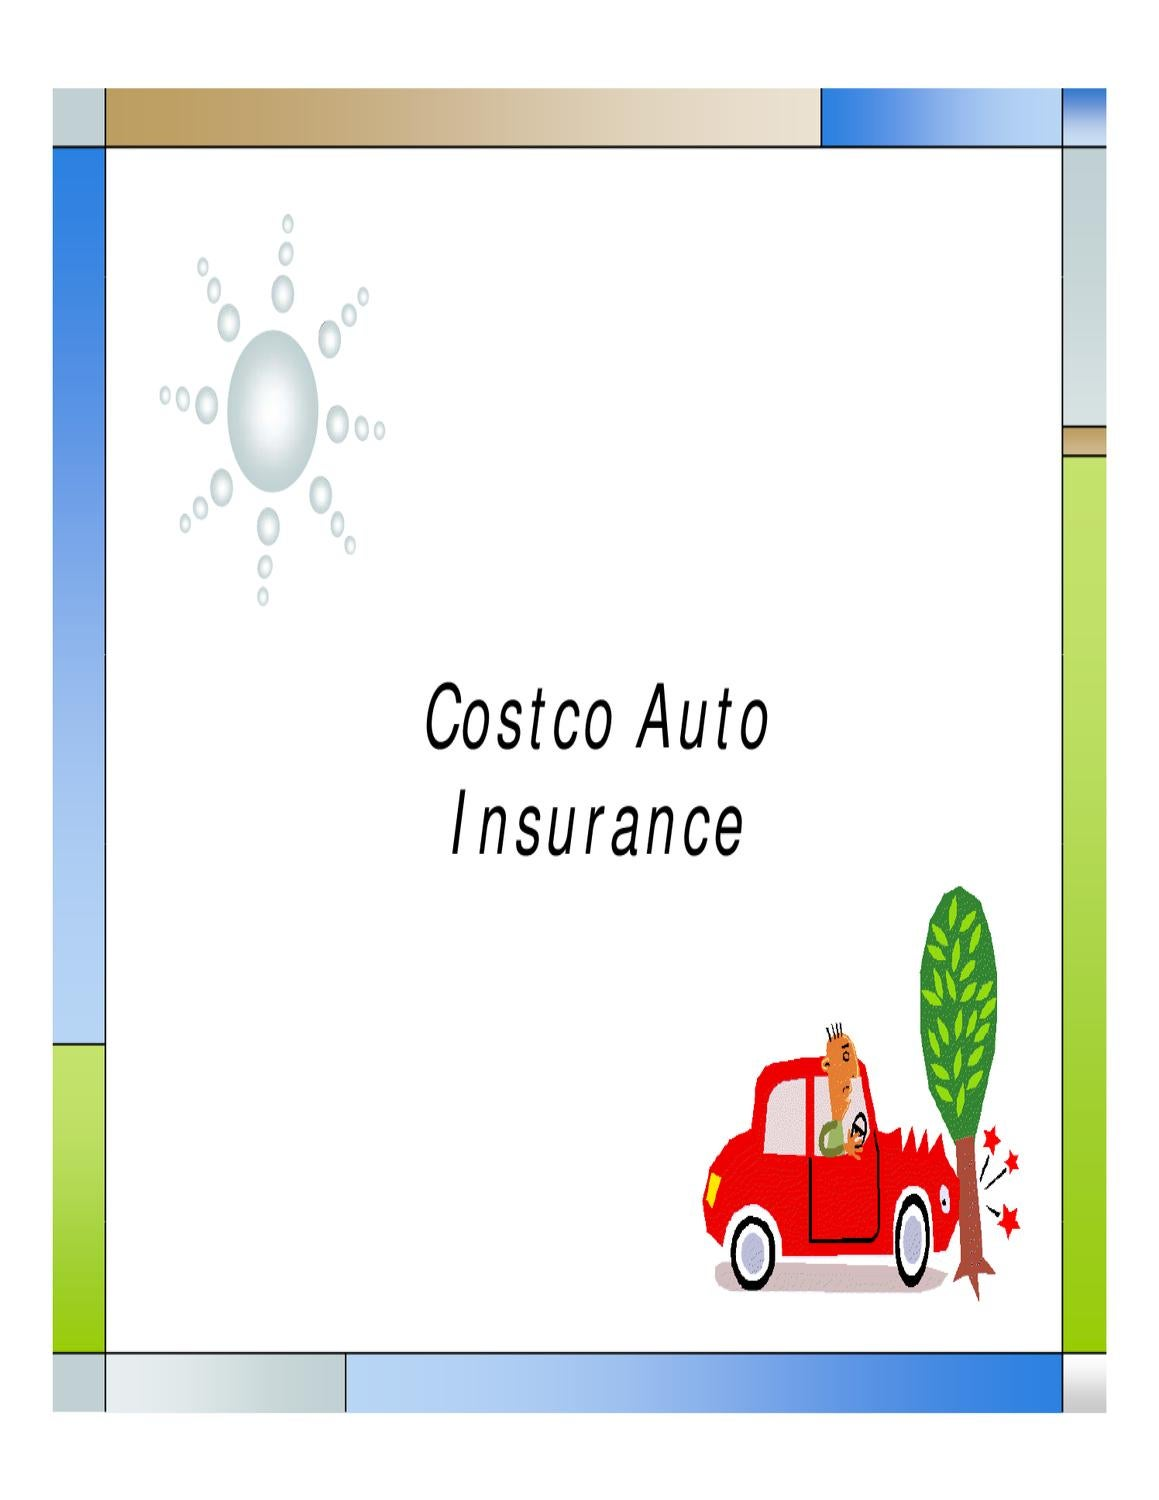 Costco Auto Insurance By John Carson Issuu